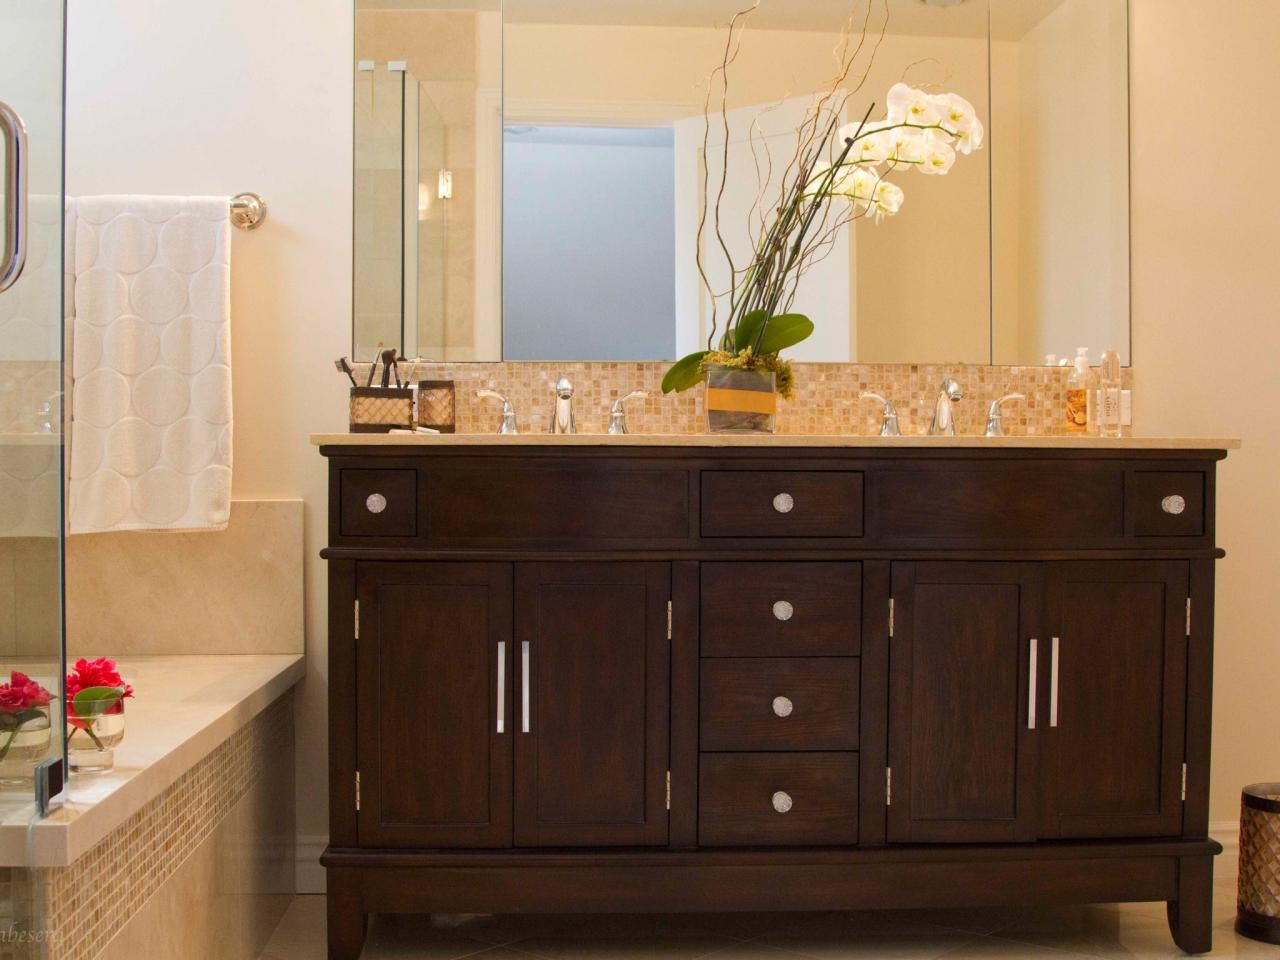 Stained Bathroom Cabinets - A dark brown double vanity completes this contemporary bathroom by balancing out the light neutral color